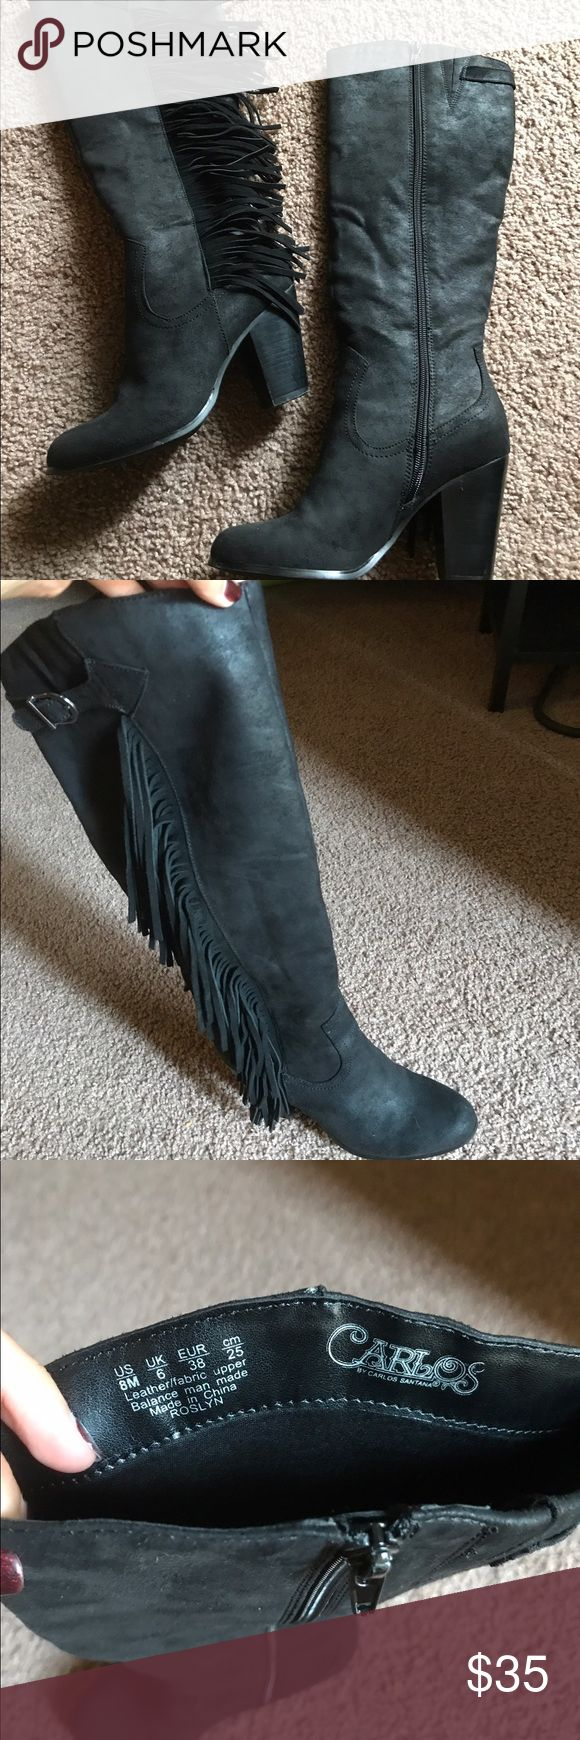 Black fringe Carlos Santana boots, size 8 Worn one time, Carlos Santana boots with fringe down outer side. Very comfortable chunky heel. Approx 2-2.5 inch heel. Suede, soft fabric. Great condition!! Carlos Santana Shoes Heeled Boots